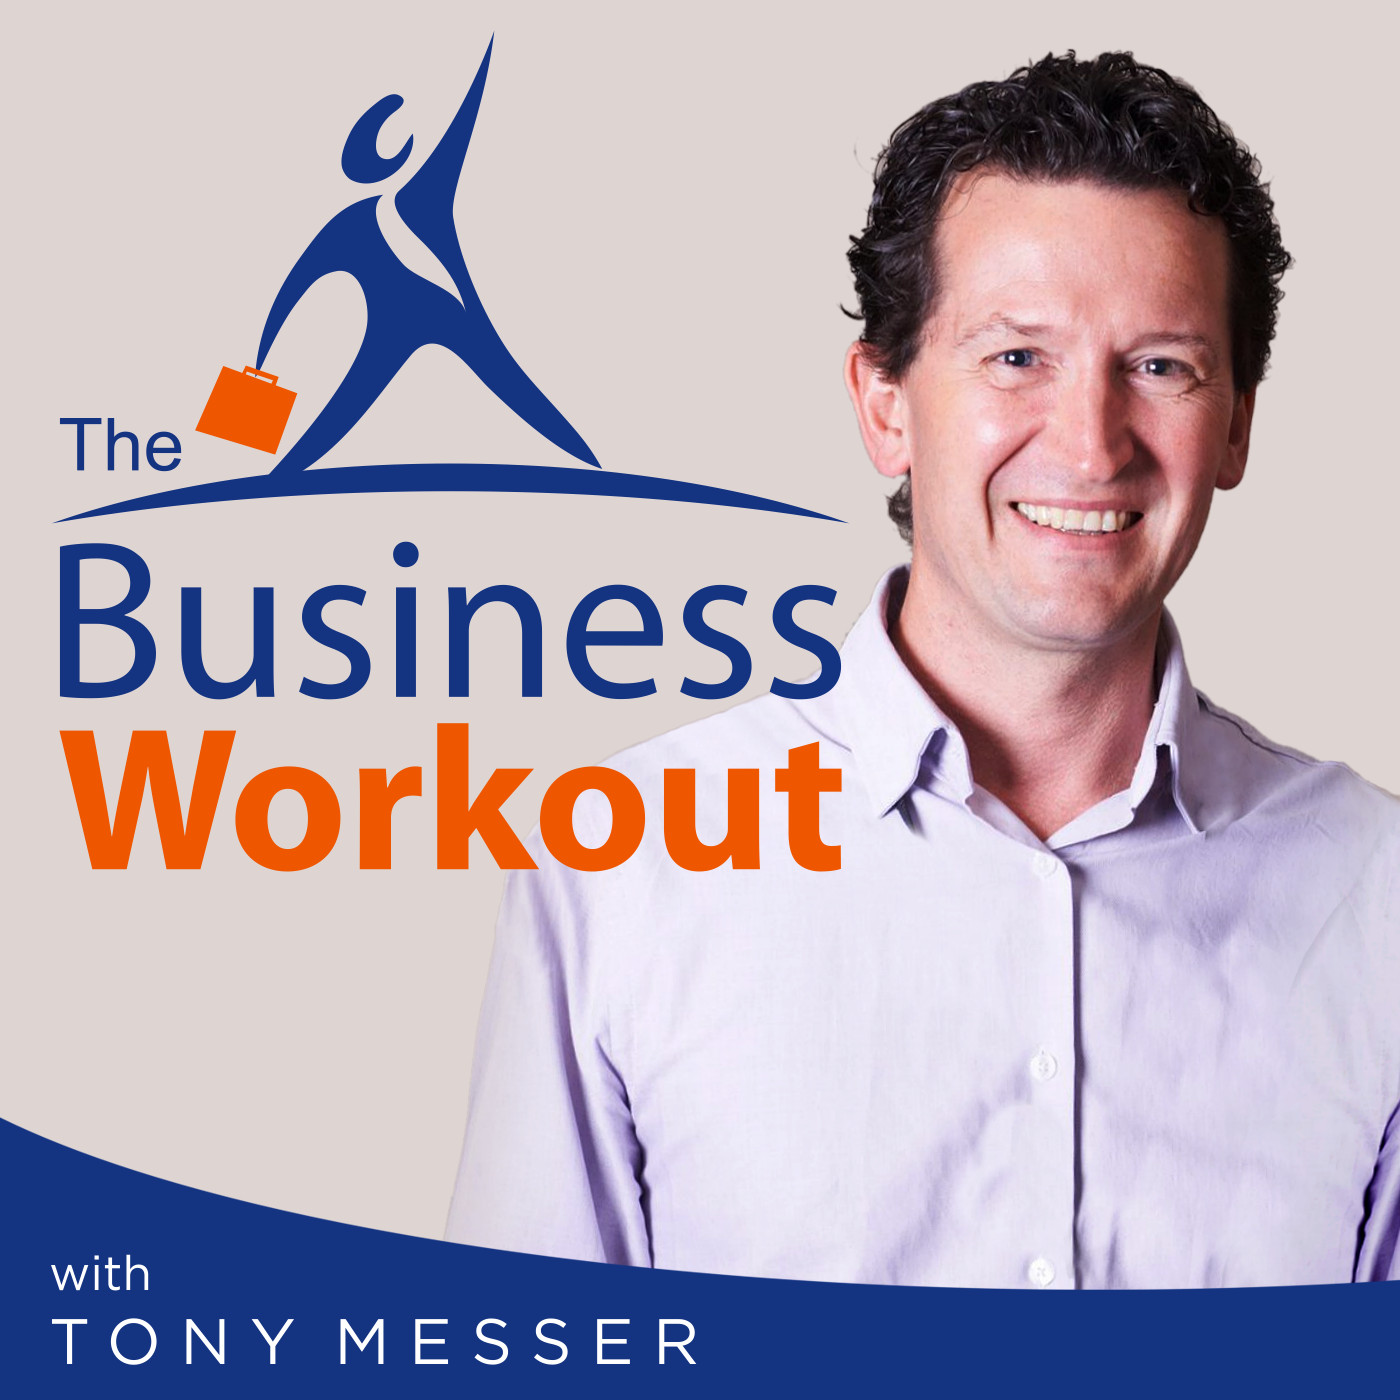 The Business Workout (Small Business Internet Marketing) - Tony Messer